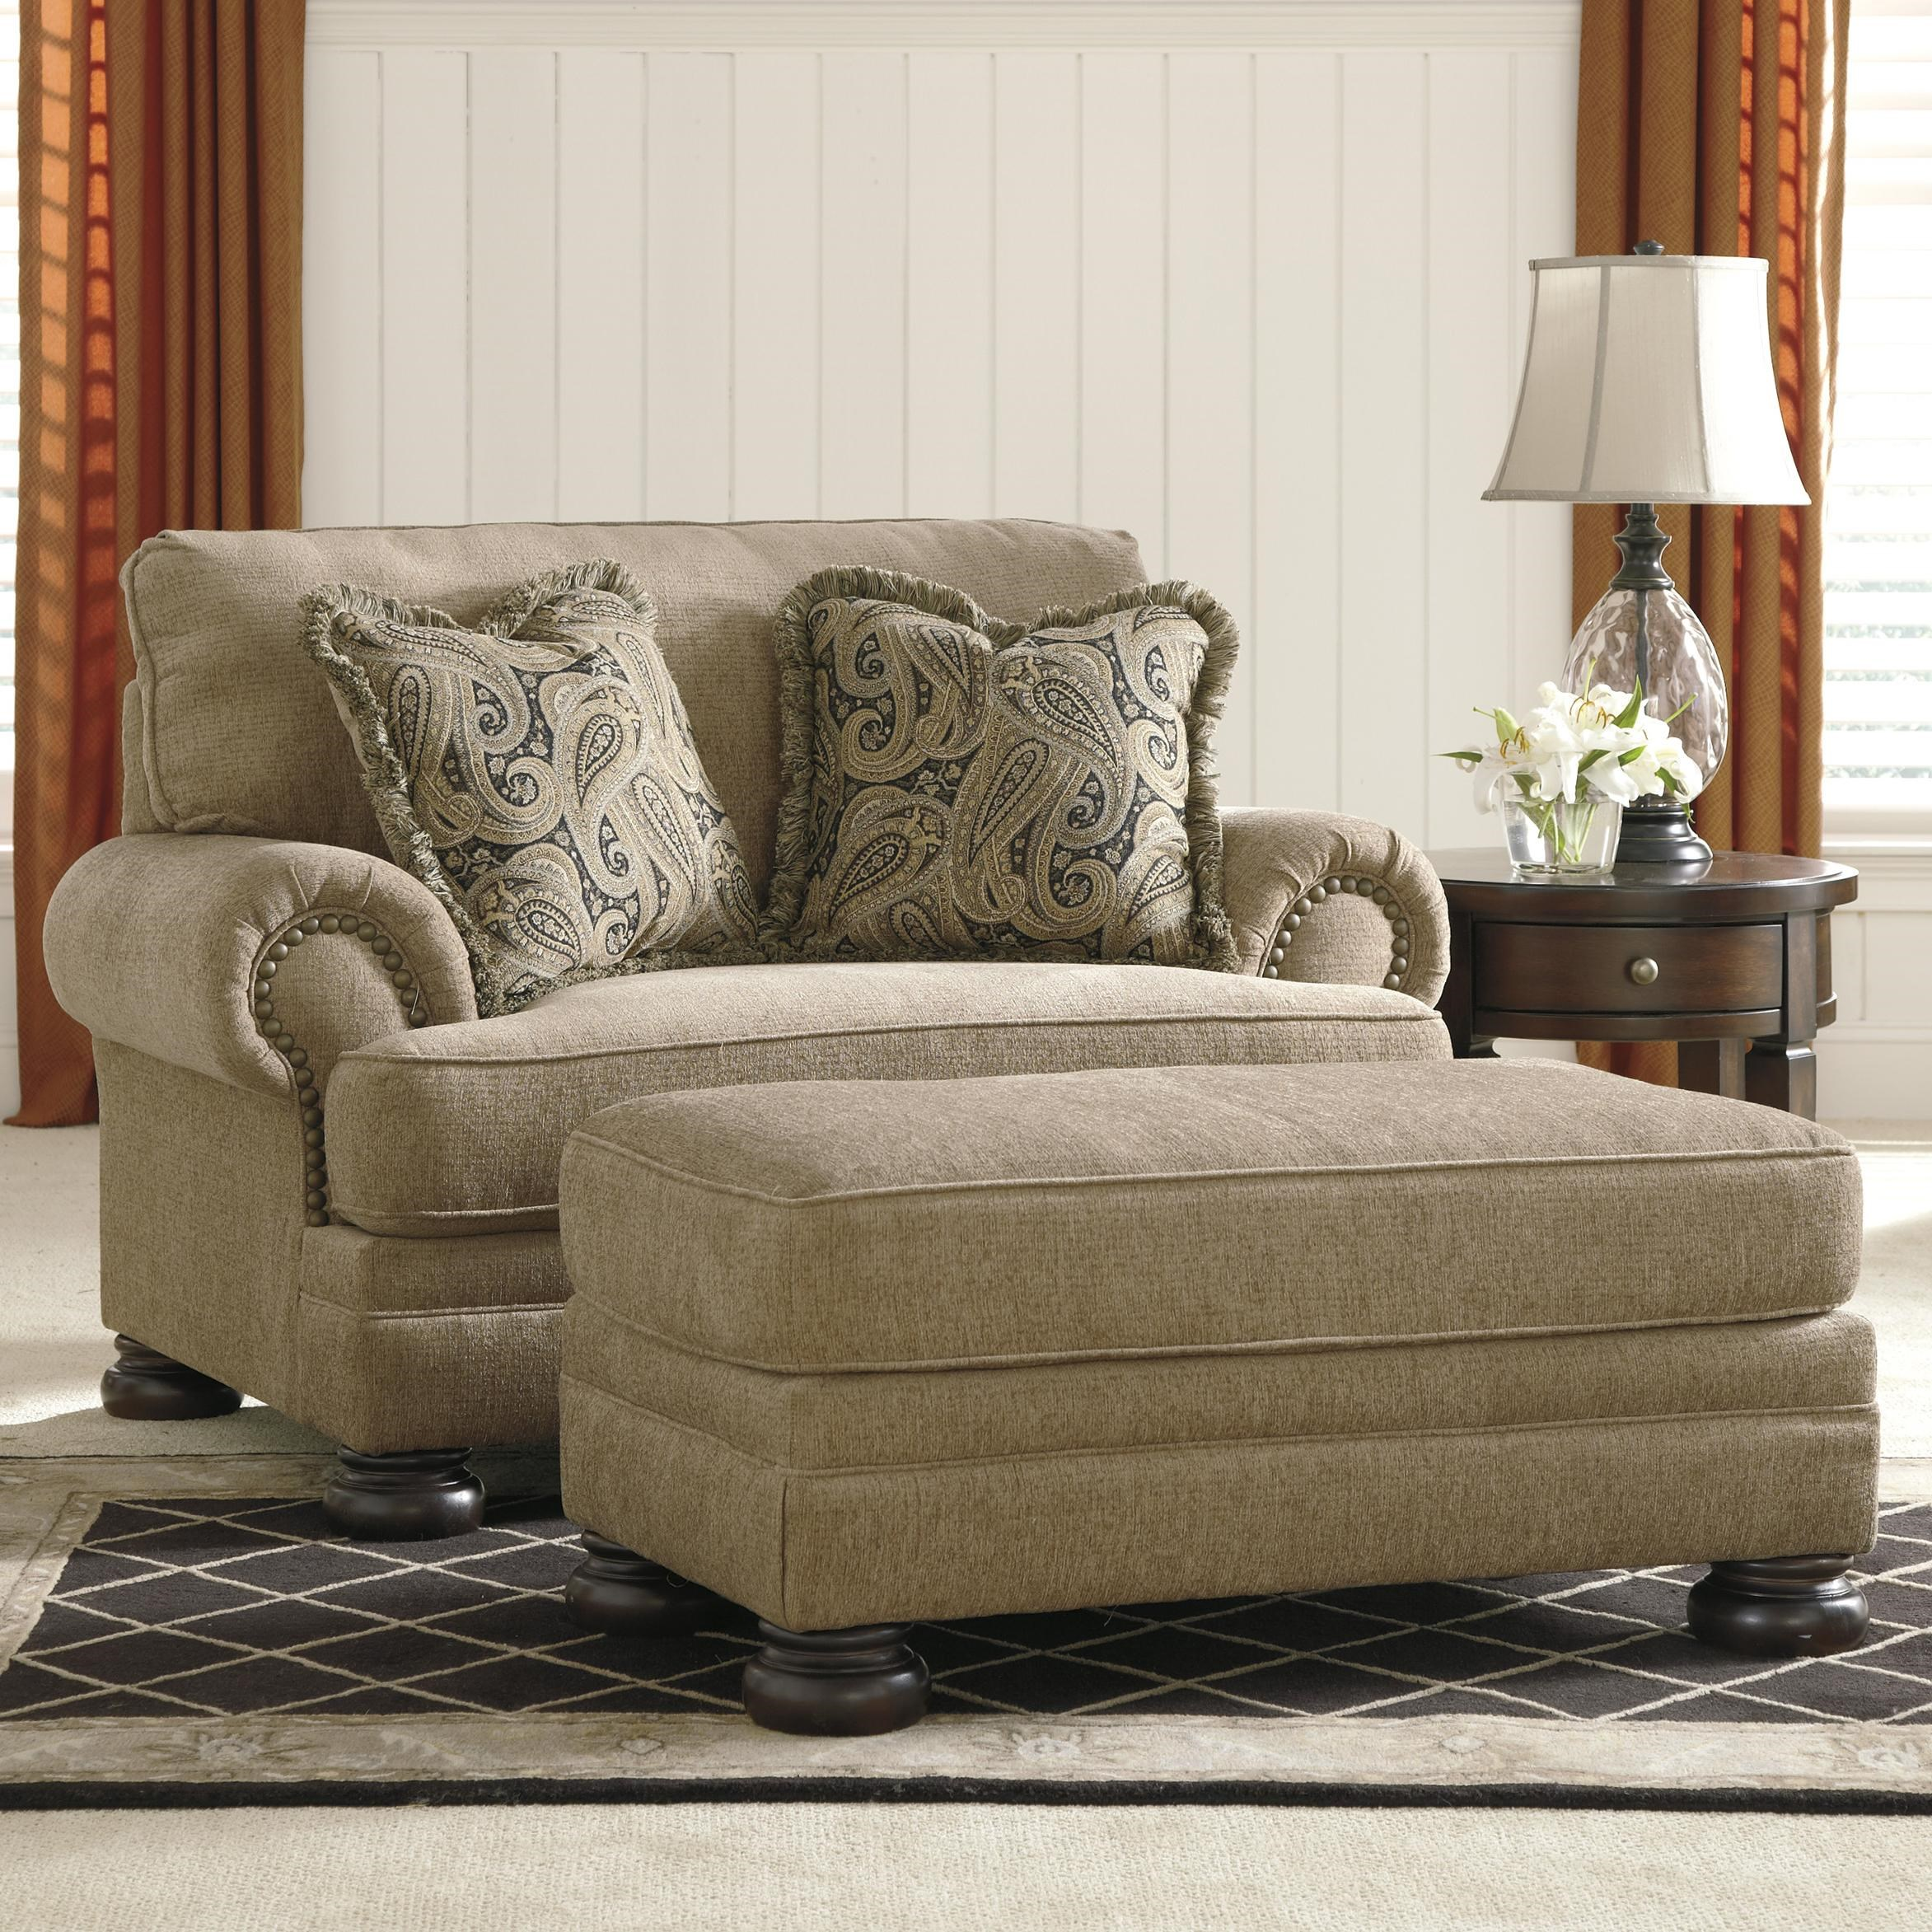 Wonderful Signature Design By Ashley Keereel   Sand Transitional Chair And A Half U0026  Ottoman